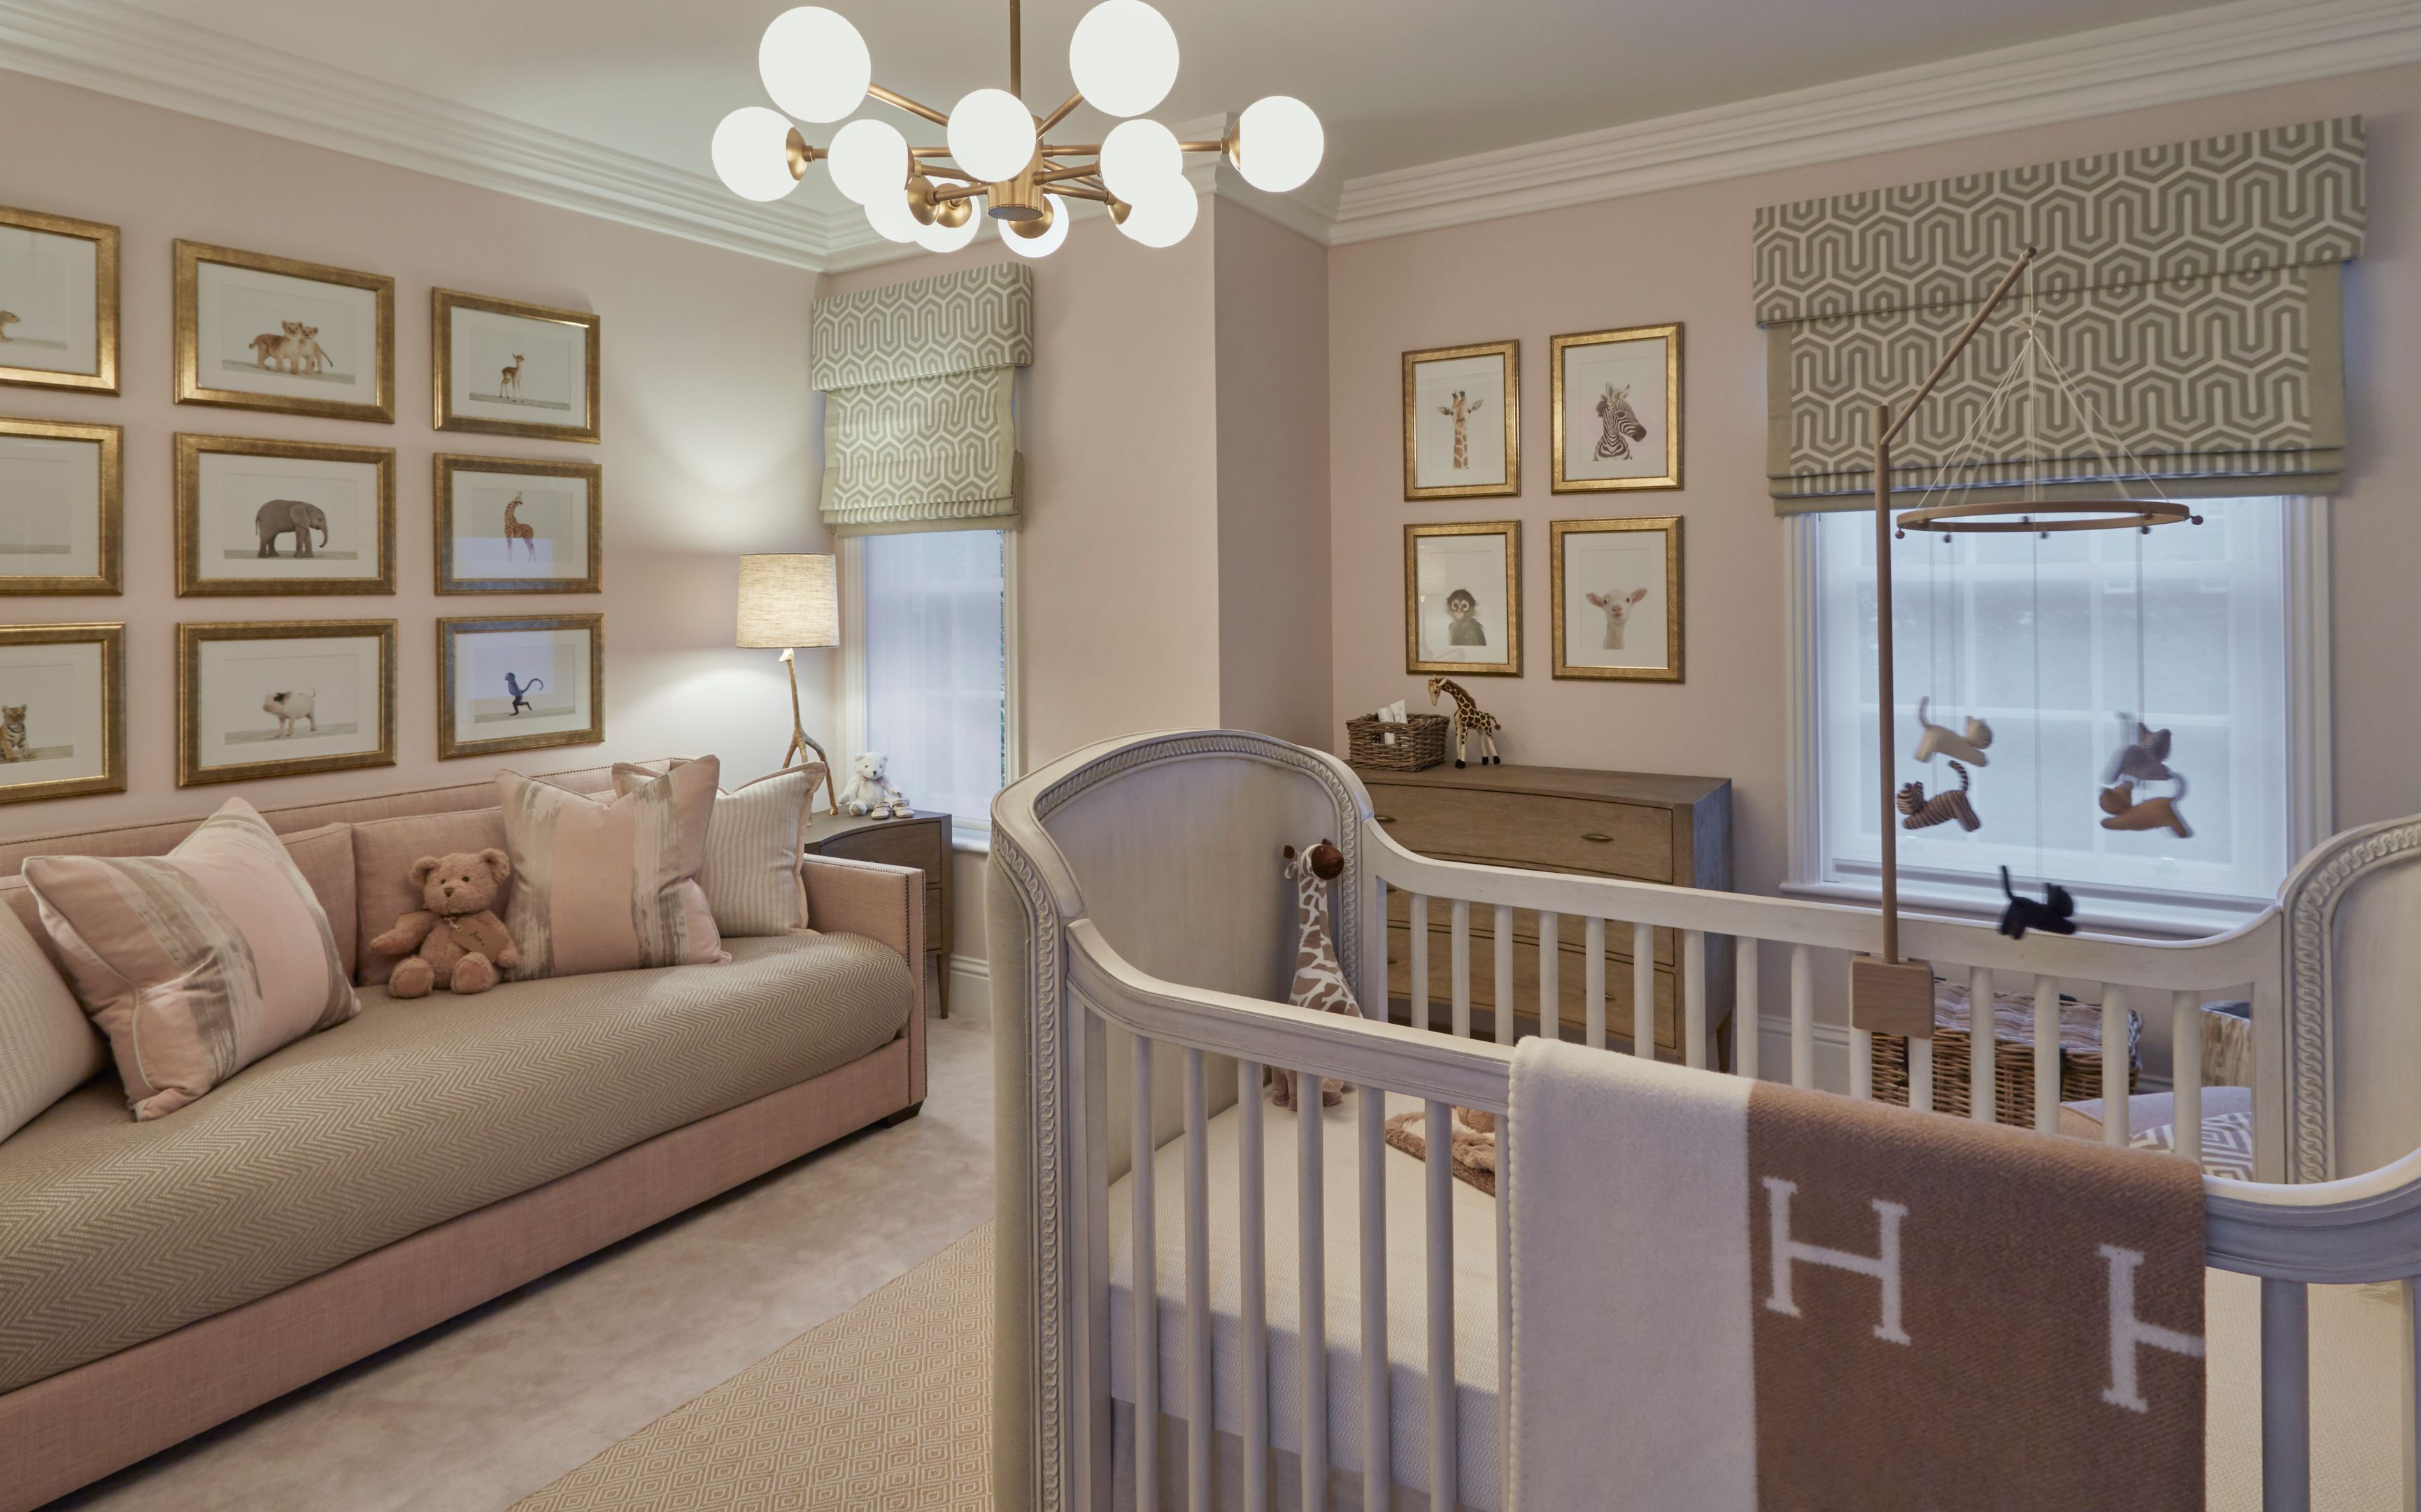 Baby Girl Room Ideas | How To Decorate Your Nursery | LuxDeco.com